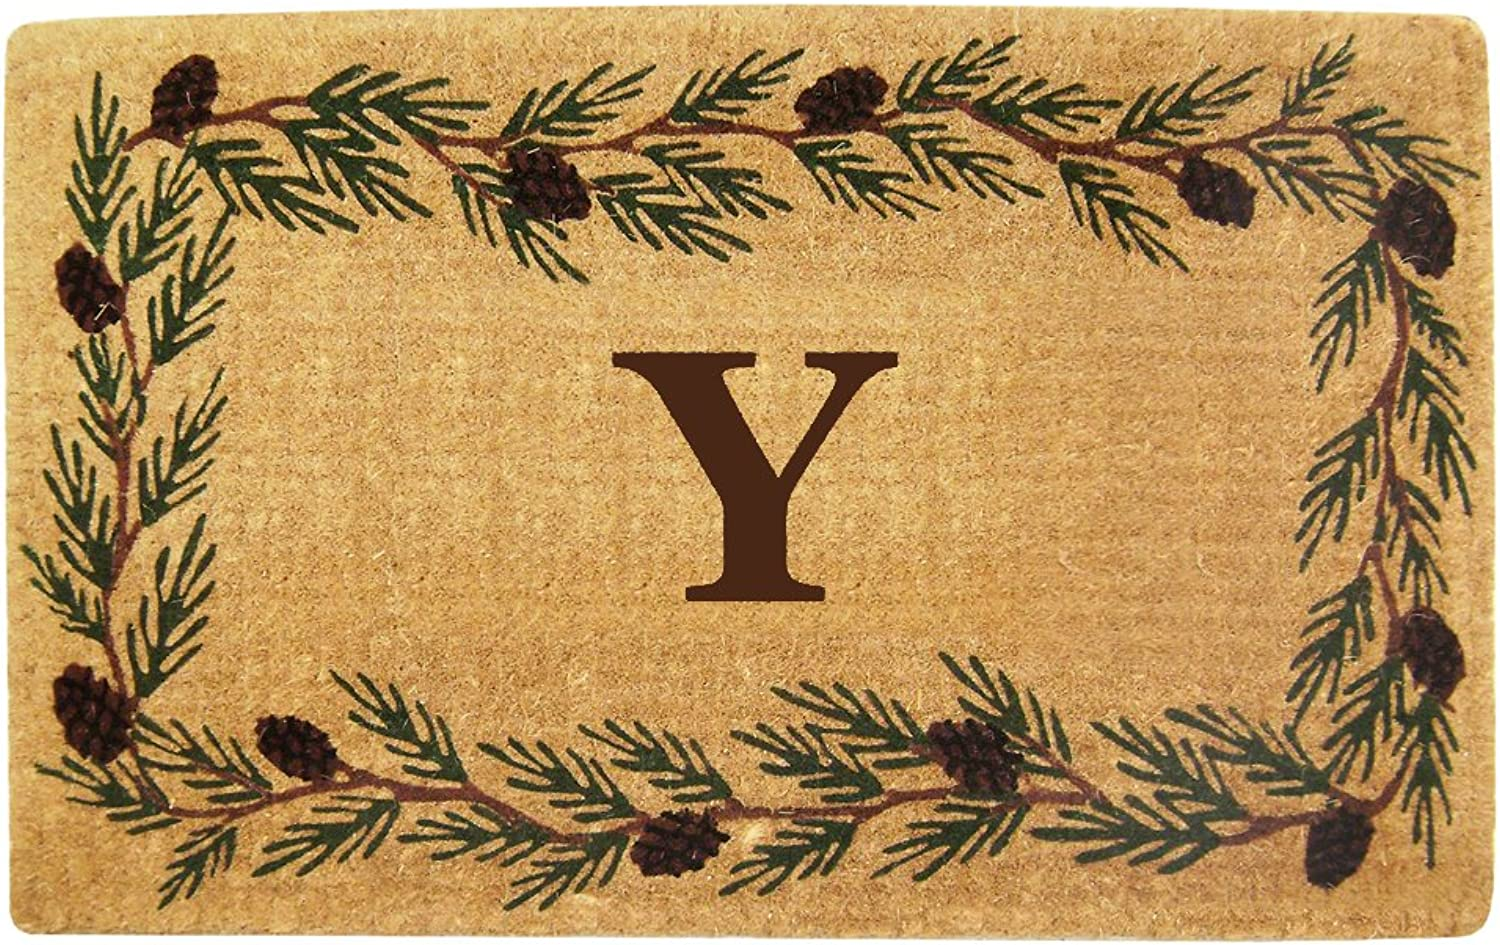 Nedia Home Heavy Duty Coco Mat with Evergreen Border, 30 by 48-Inch, Monogrammed Y